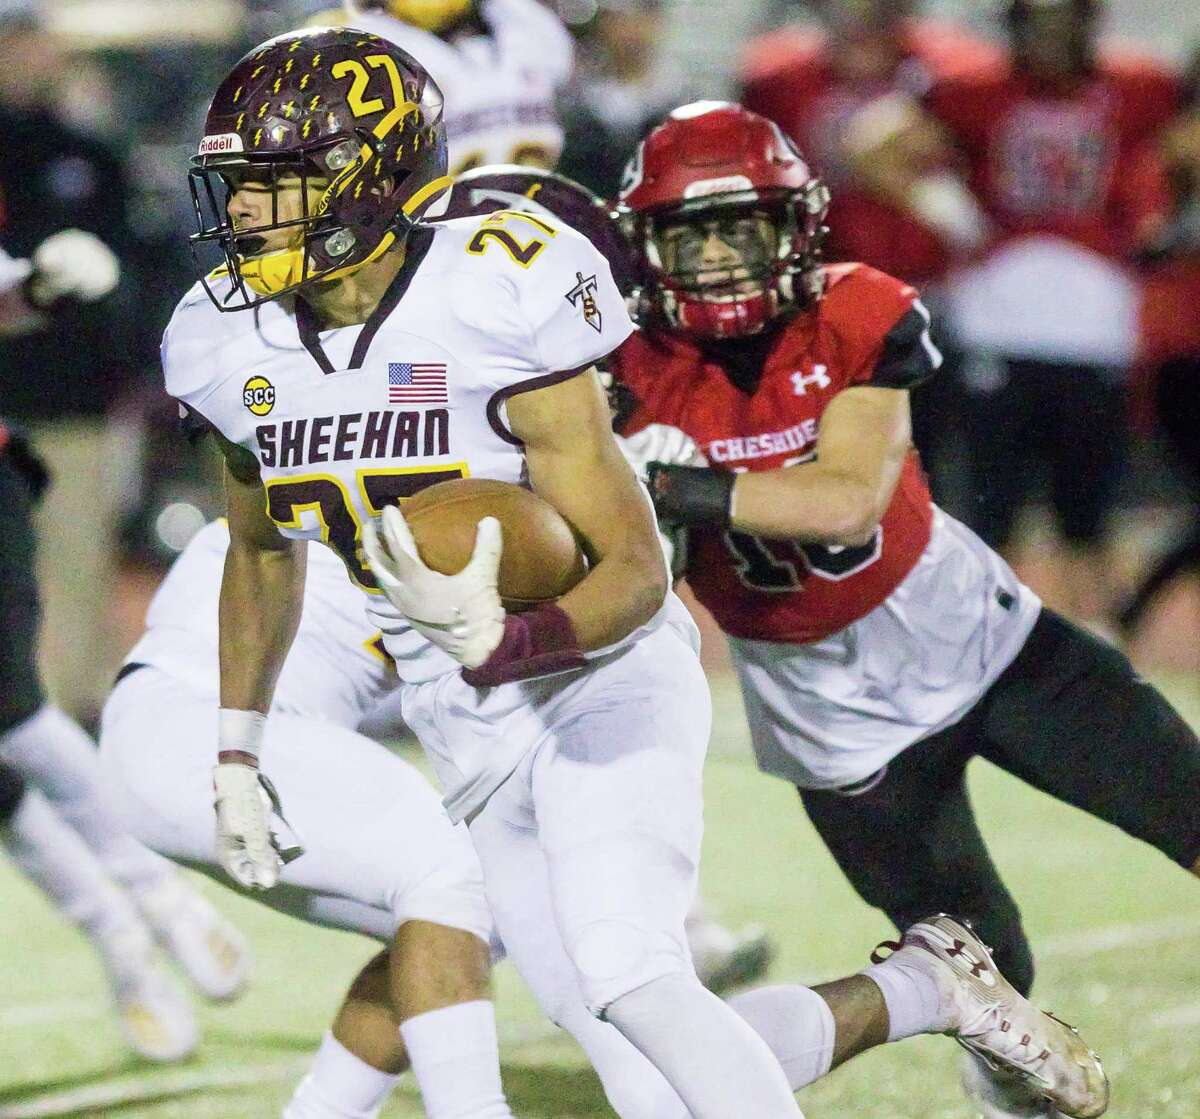 (John Vanacore/For Hearts Connecicut Media) Sheehan's Jordan Davis gets past Cheshire's Ben Wable for a big gain during Cheshire's win Friday night.